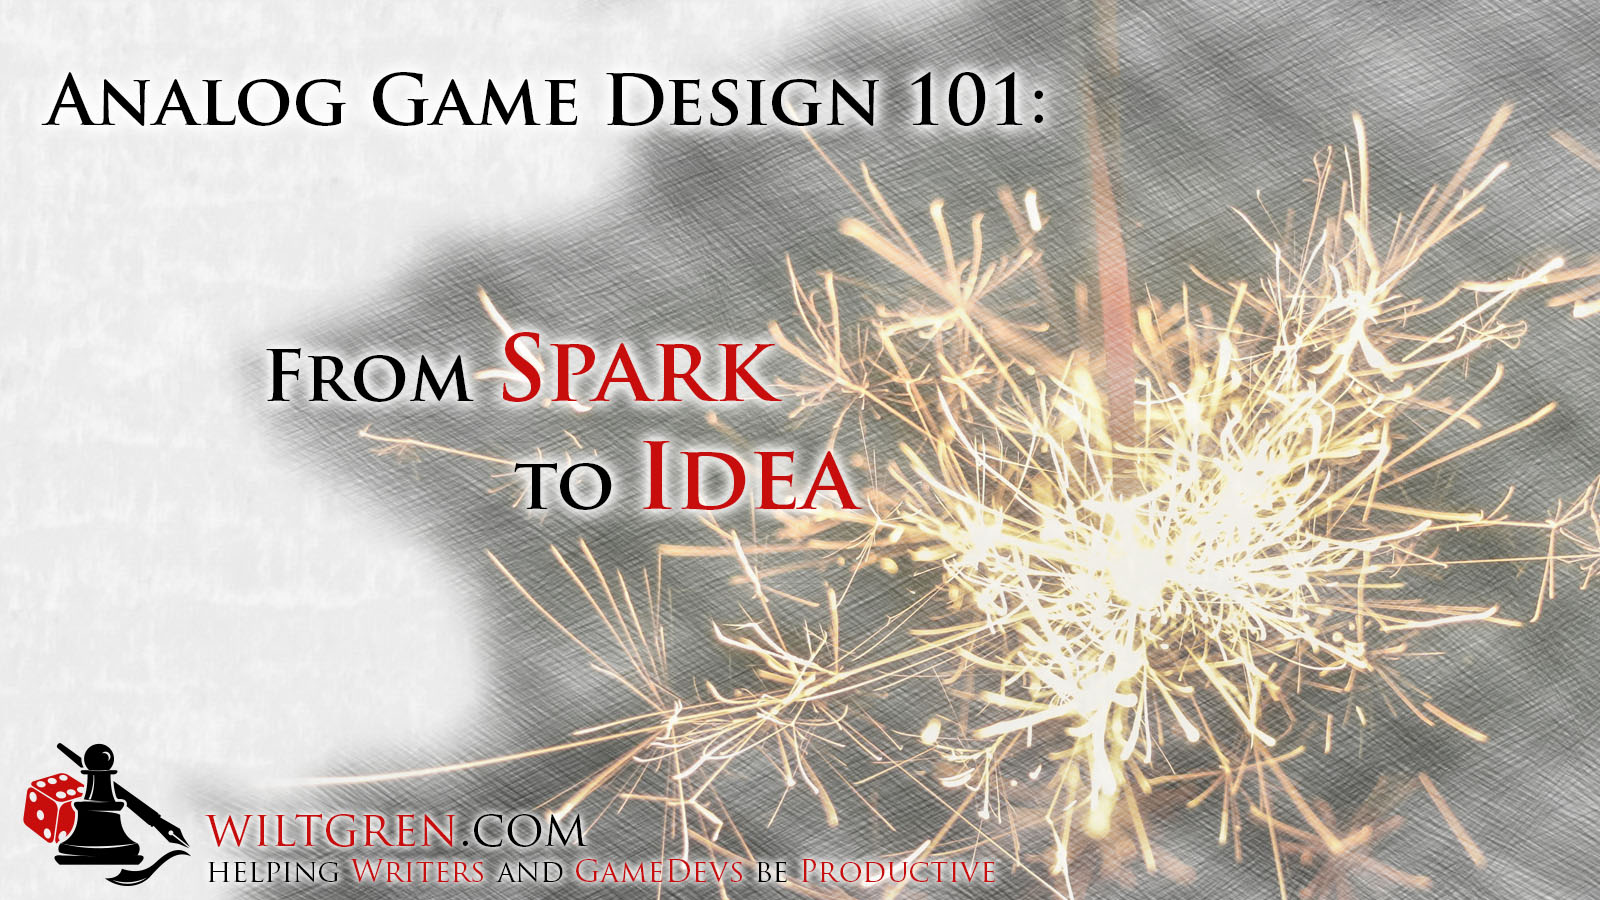 Analog Game Design From Spark To Idea Filip Wiltgren - Game design 101